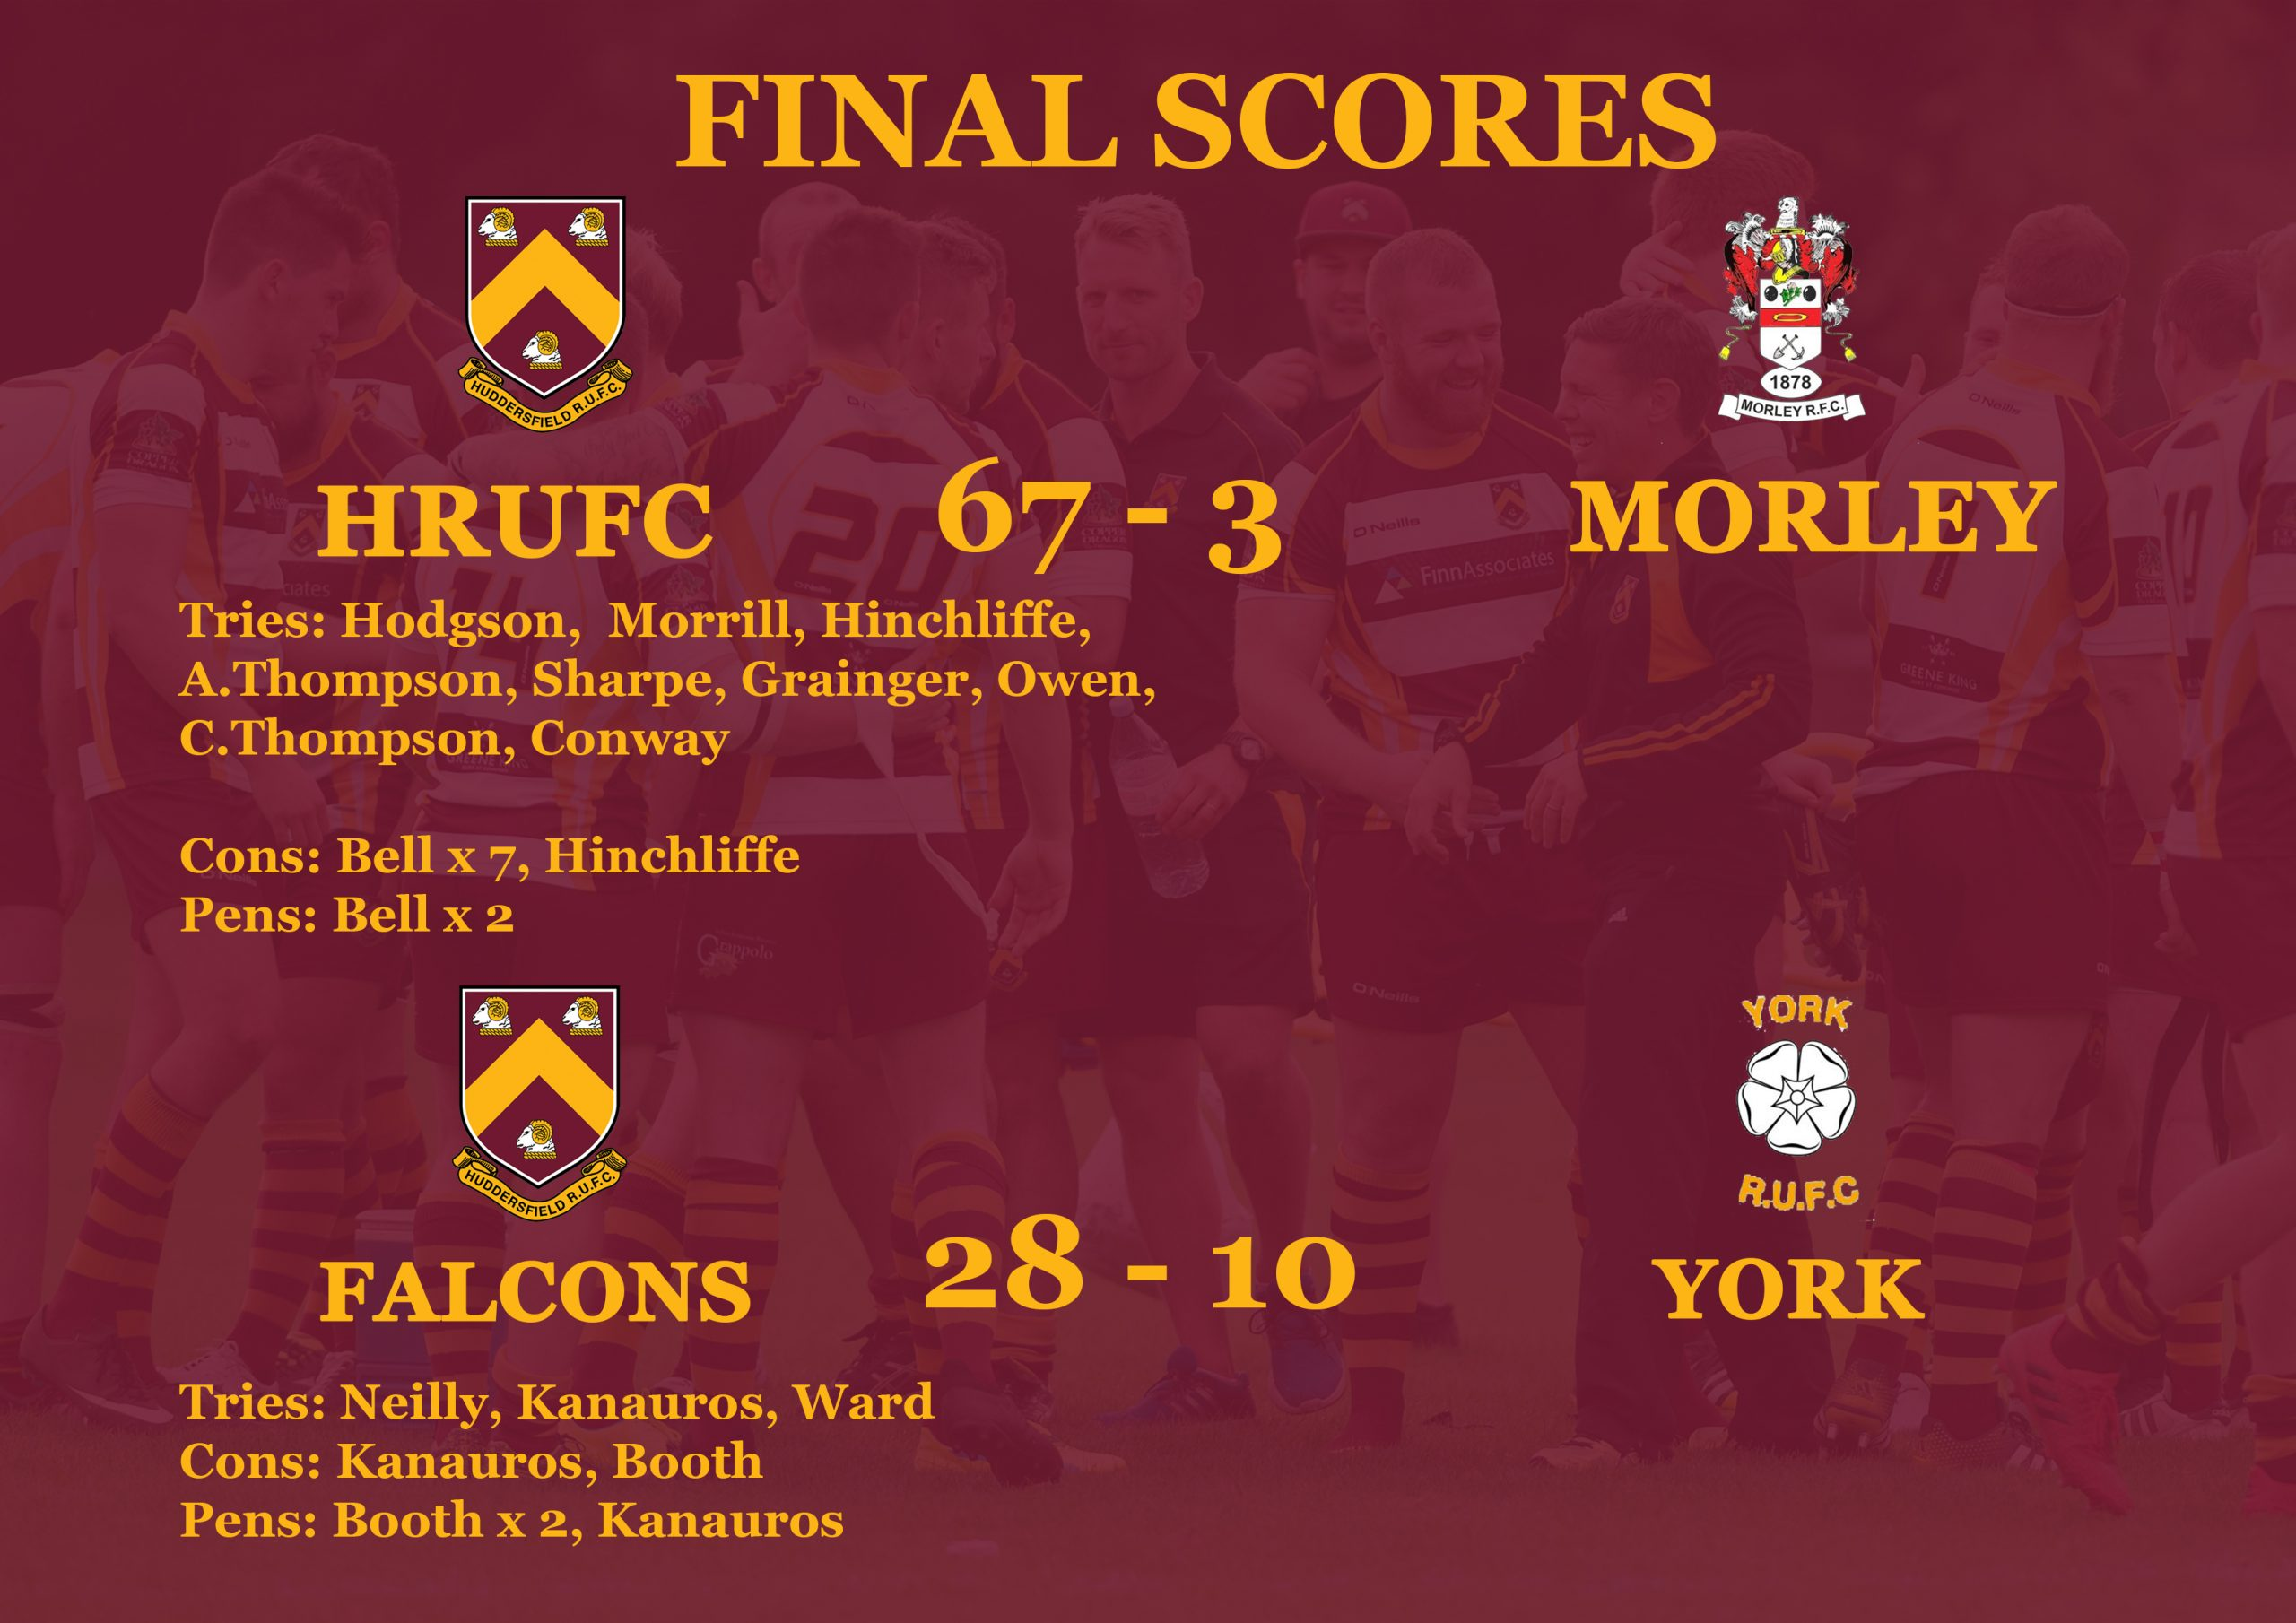 final_score_firsts_and_a_team440-1